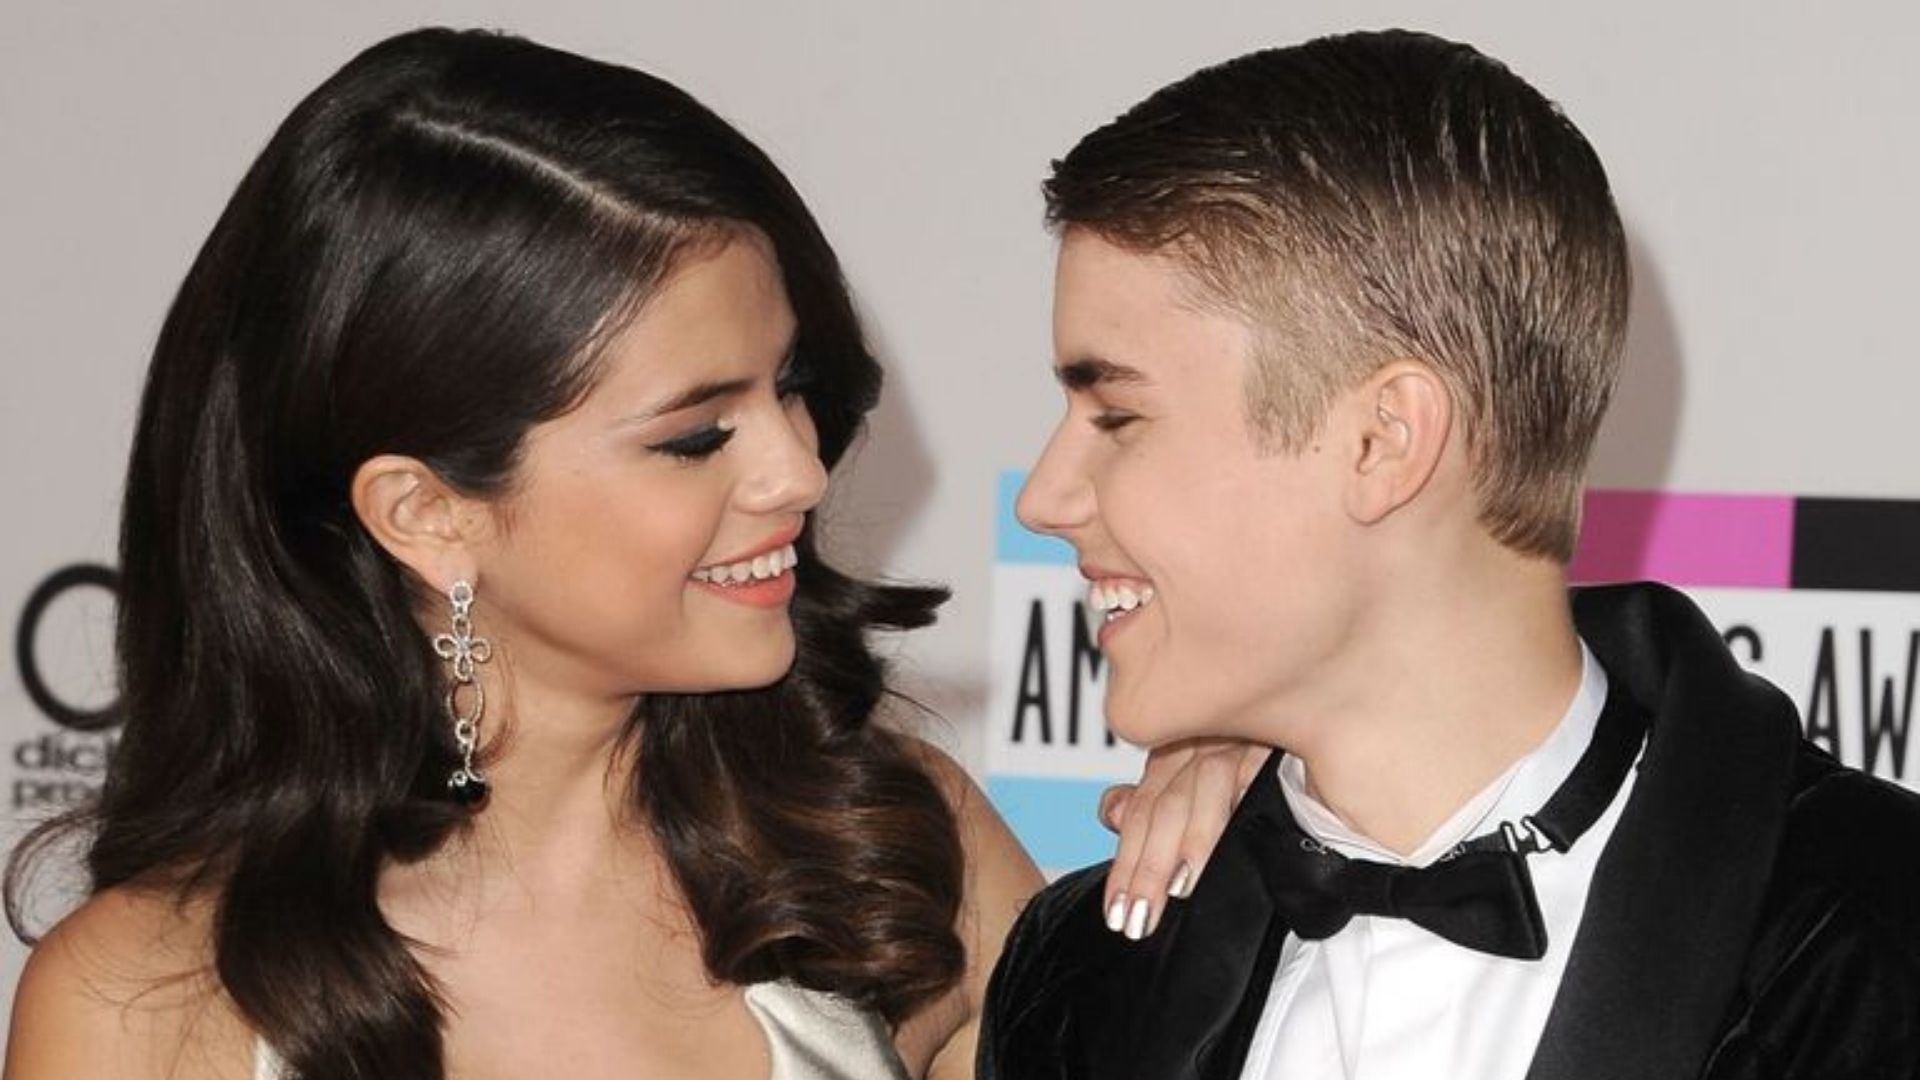 Selena Gomez Says She Wants Justin Bieber To Hear Her Songs